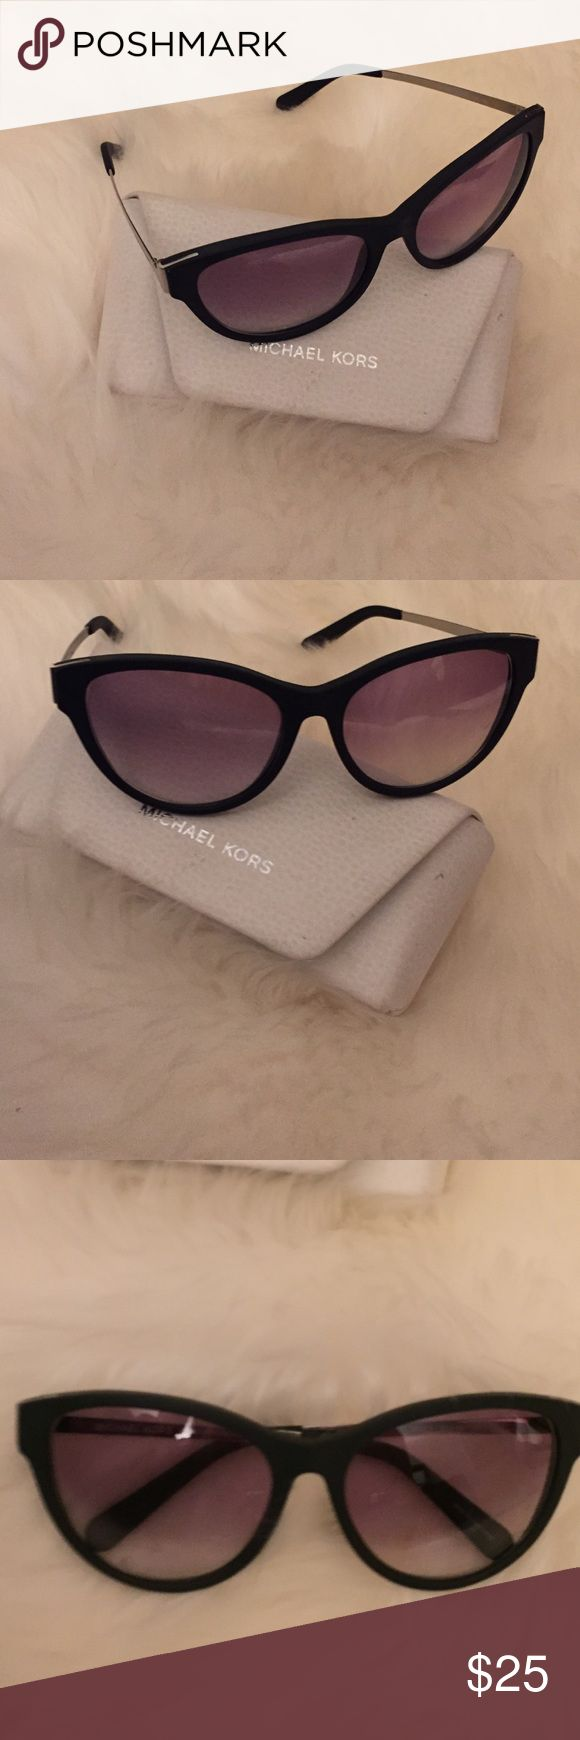 Michael Kors RX Sunglasses with Case Great condition. Small prescription. .5 farsided. Lenses can be replaced Accessories Sunglasses